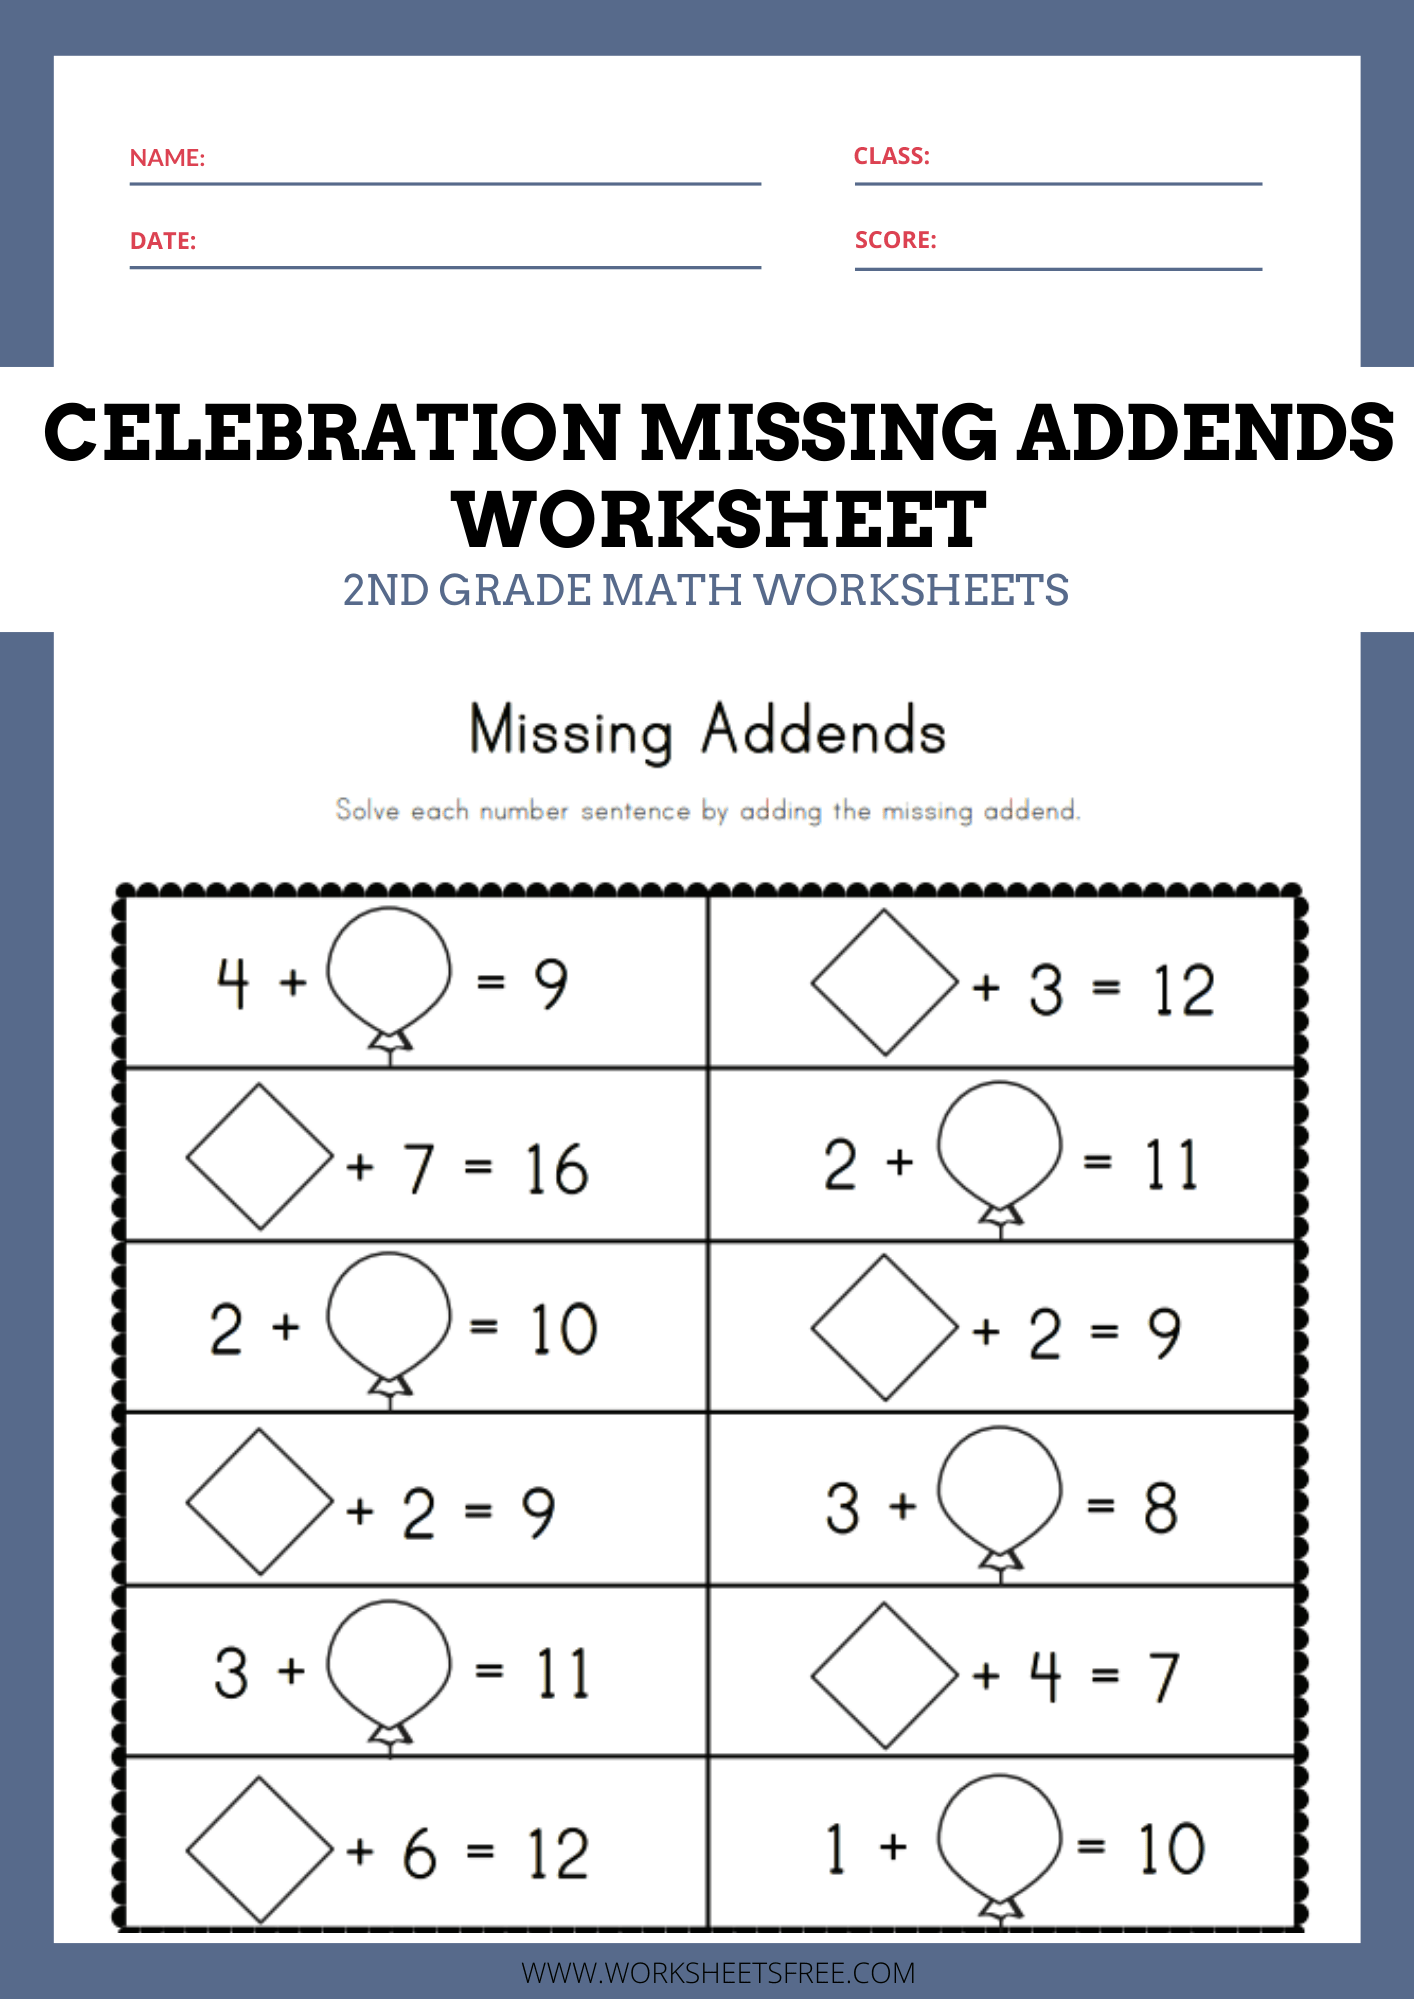 Celebration Missing Addends Worksheet